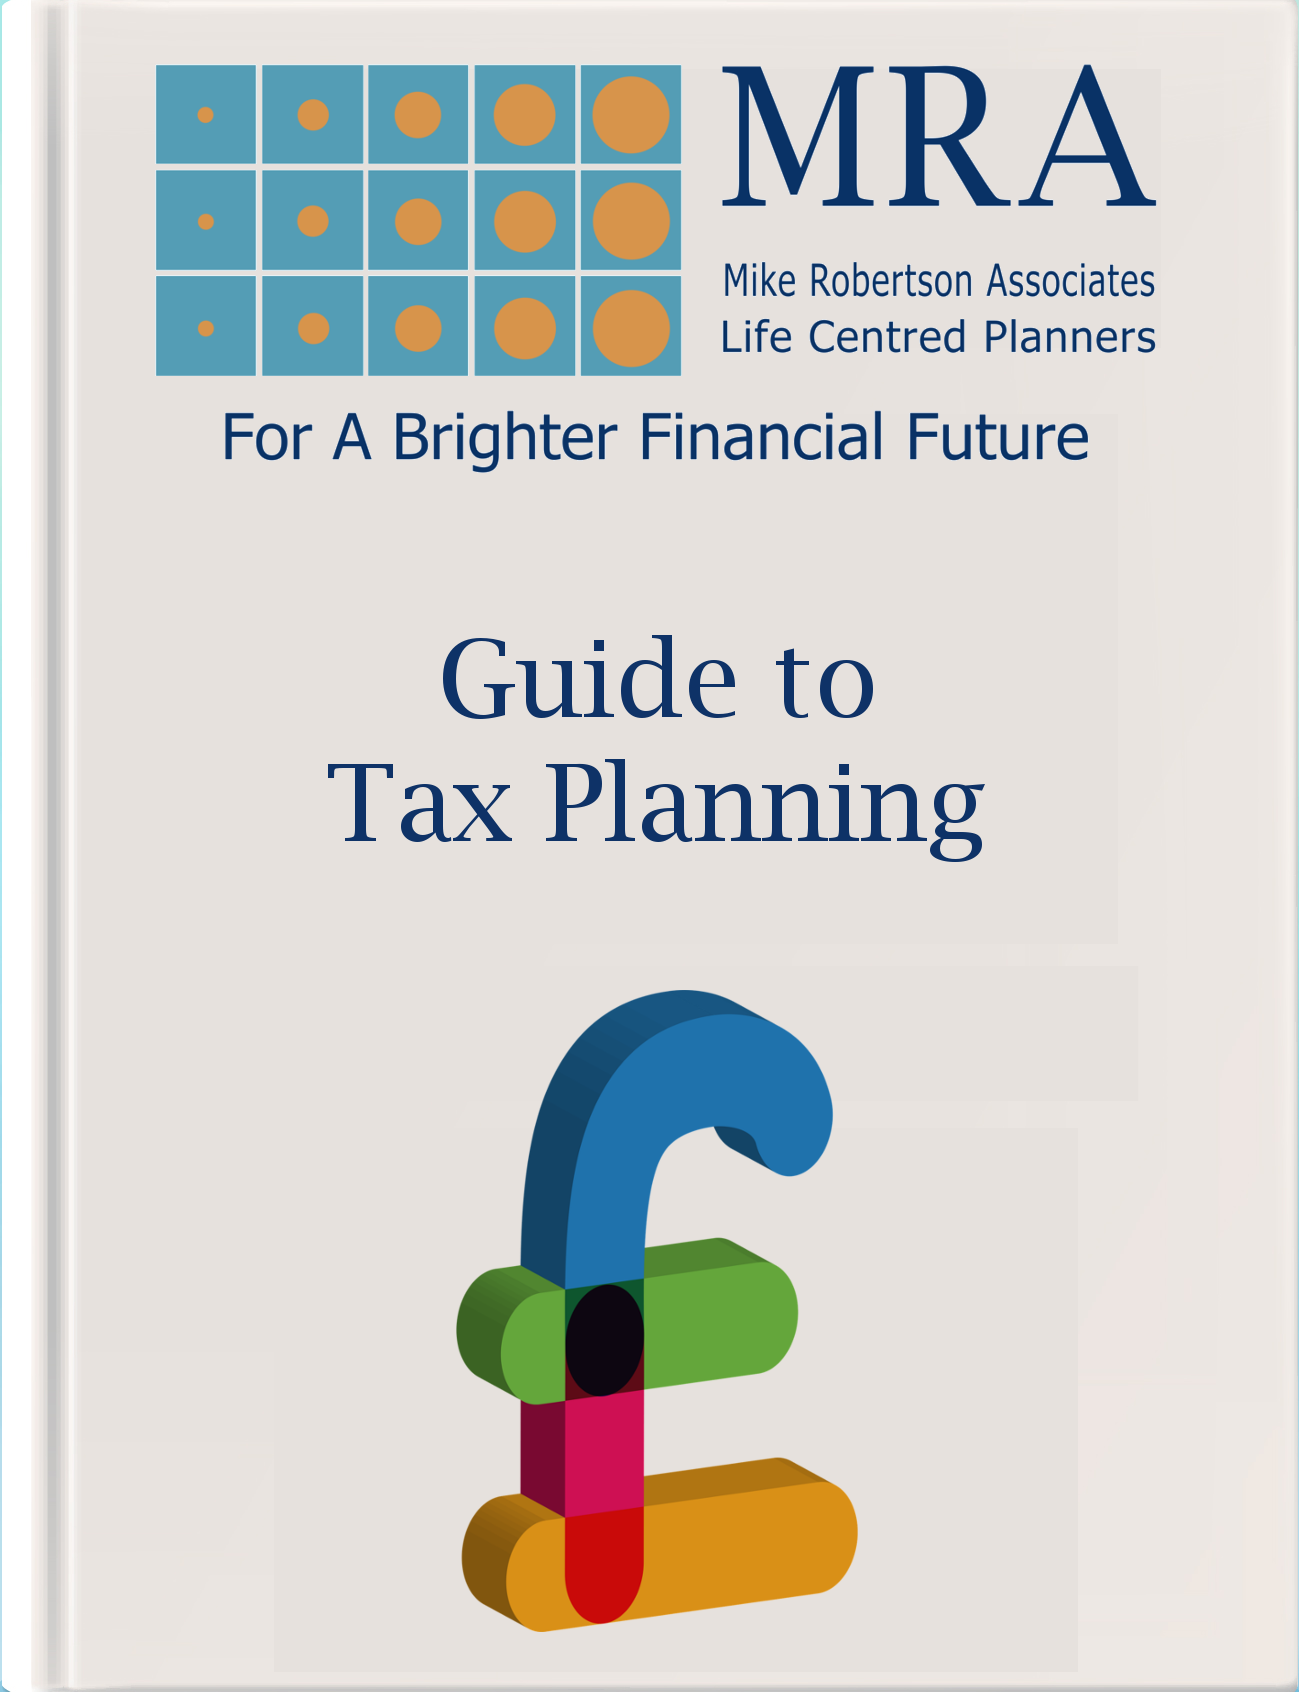 Download our Guide to Tax Planning. Lifestyle Financial Planners, Lifestyle Financial Planning, Life Centred Financial Planning, Life Centred Financial Planners, Independent Financial Adviser, Independent Financial Advisor, IFA Local, Life Style Financial Consultant, Life Centred Financial Consultant, Personal Financial Planning, Financial Planning, Personal Financial Planning, Personal Finances, Financial Consultant, Pensions, Pensions Planner, Retirement Planning, Retirement Planner, Tax Planning, Tax Planning Consultant, Tax Planning Adviser, Tax Consultant, Tax Planning Advisor, Cash Flow Budgeting, Banking, Insurance, Term Assurance, Mortgage Consultant, Mortgage Adviser, Mortgage Advisor, Mortgages, Savings, Pesonal Savings, Investments, Estate Planning, Estate Planner, Later Life Planning, Wealth Management, Business Adviser, Business Consultant, Forecasting, Investments, Portfolio Planning, Financial Guidance, Financial Security, Family Protection, Critical Illness, Critical Illness Planning, Critical Illness Protection, Tax Efficient Savings, Tax Planning, Tax Efficient Investments, Saving For Long Term Goals, Savings For Long Term Care, Life Centred Financial Advice, Life Centred Adviser, Life Centred Advisor, Life Centered Planning, Life Centered Adviser, Cash Flow Forecasting, Residence Nil Rate Band, Land Registry, Tracing Land Registry Form, Financial Planning, Financial Planners, Work To Live Financial Planning, What is Inflation, How to beat Inflation, Selling a property in a limited company, SSAS Pensions, SSAS Pension, What is a SSAS, What is a SIPP, SIPP Planning, SSAS Planner, SIPP Planner, SSAS Planning, Stakeholder Pansions, Financial Freedom Reviews, When Can I Draw My State Pension, Saving Money, Ways To Save Money, Ways To Save money on a Tight Budget, Land Registry, What is An Annuity, Annuities, Lower My Bills, Nil Rate Band, Inheritance Tax Advice, Essential Corporate Solutions, Inheritance Tax Residence Nil Rate Band, Debt Relief Order, Life Planning, Financial Advice East Sussex, Mike Robertson, Split The Bills, The Residence Nil Rate Band, The Best Saving Schemes, What is a Venture Capital Trust, What Is A VCT, What Is A EIS, What Is An Enterprise Investment Scheme, Is A Financial Planner Important, What Can a Financial Planner do for me, Do I need Financial Planning, Do I need Financial Planning, Do I need a Financial Planner, Do You Need a Financial Adviser, Eight Steps to choosing a Financial Adviser, Getting Financial Advice, Need Financial Planning, Why Do You need a Financial Adviser, What is A Financial Adviser, Pensions Advice